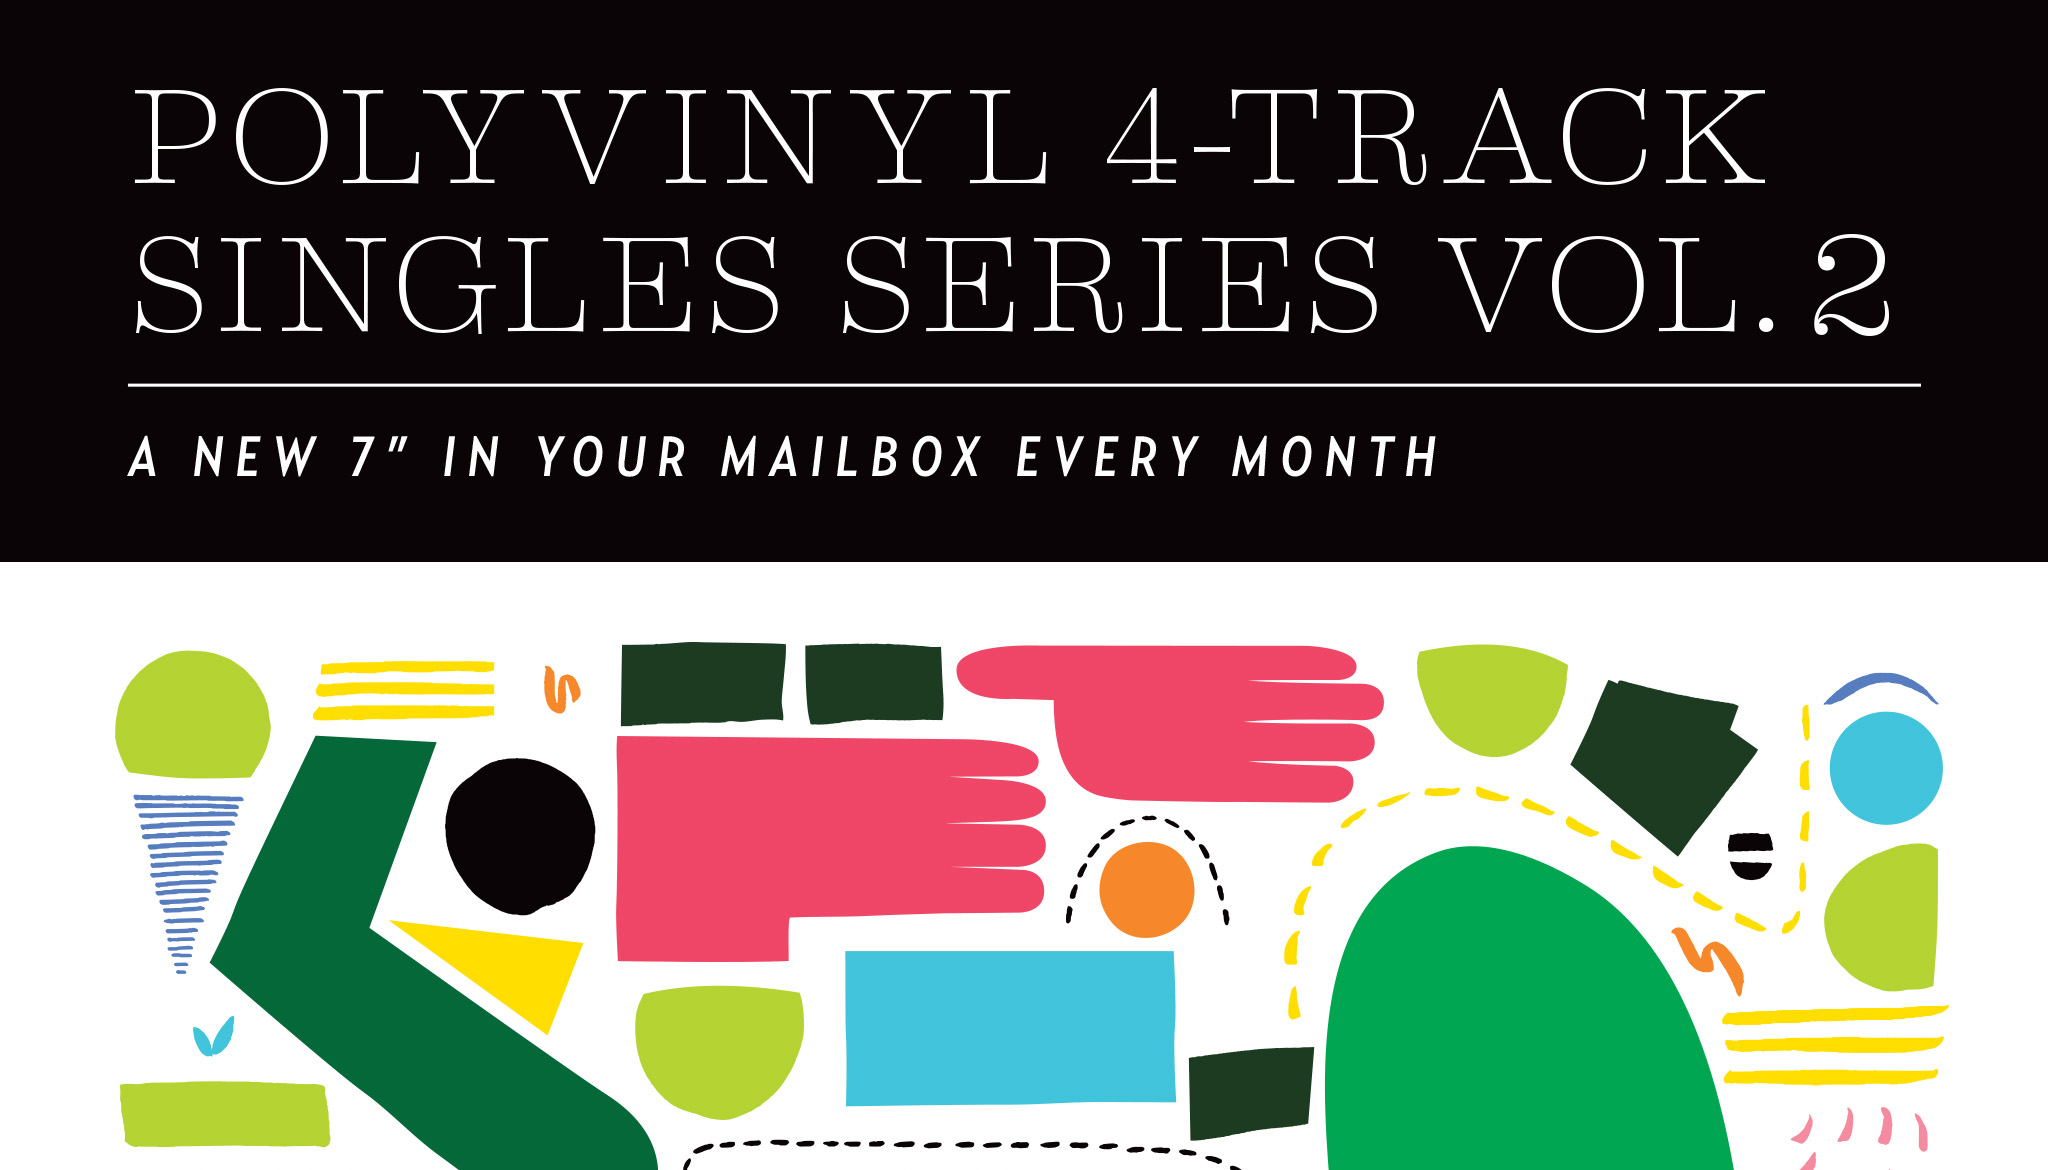 4-Track Singles Series Vol. 2 Announced!